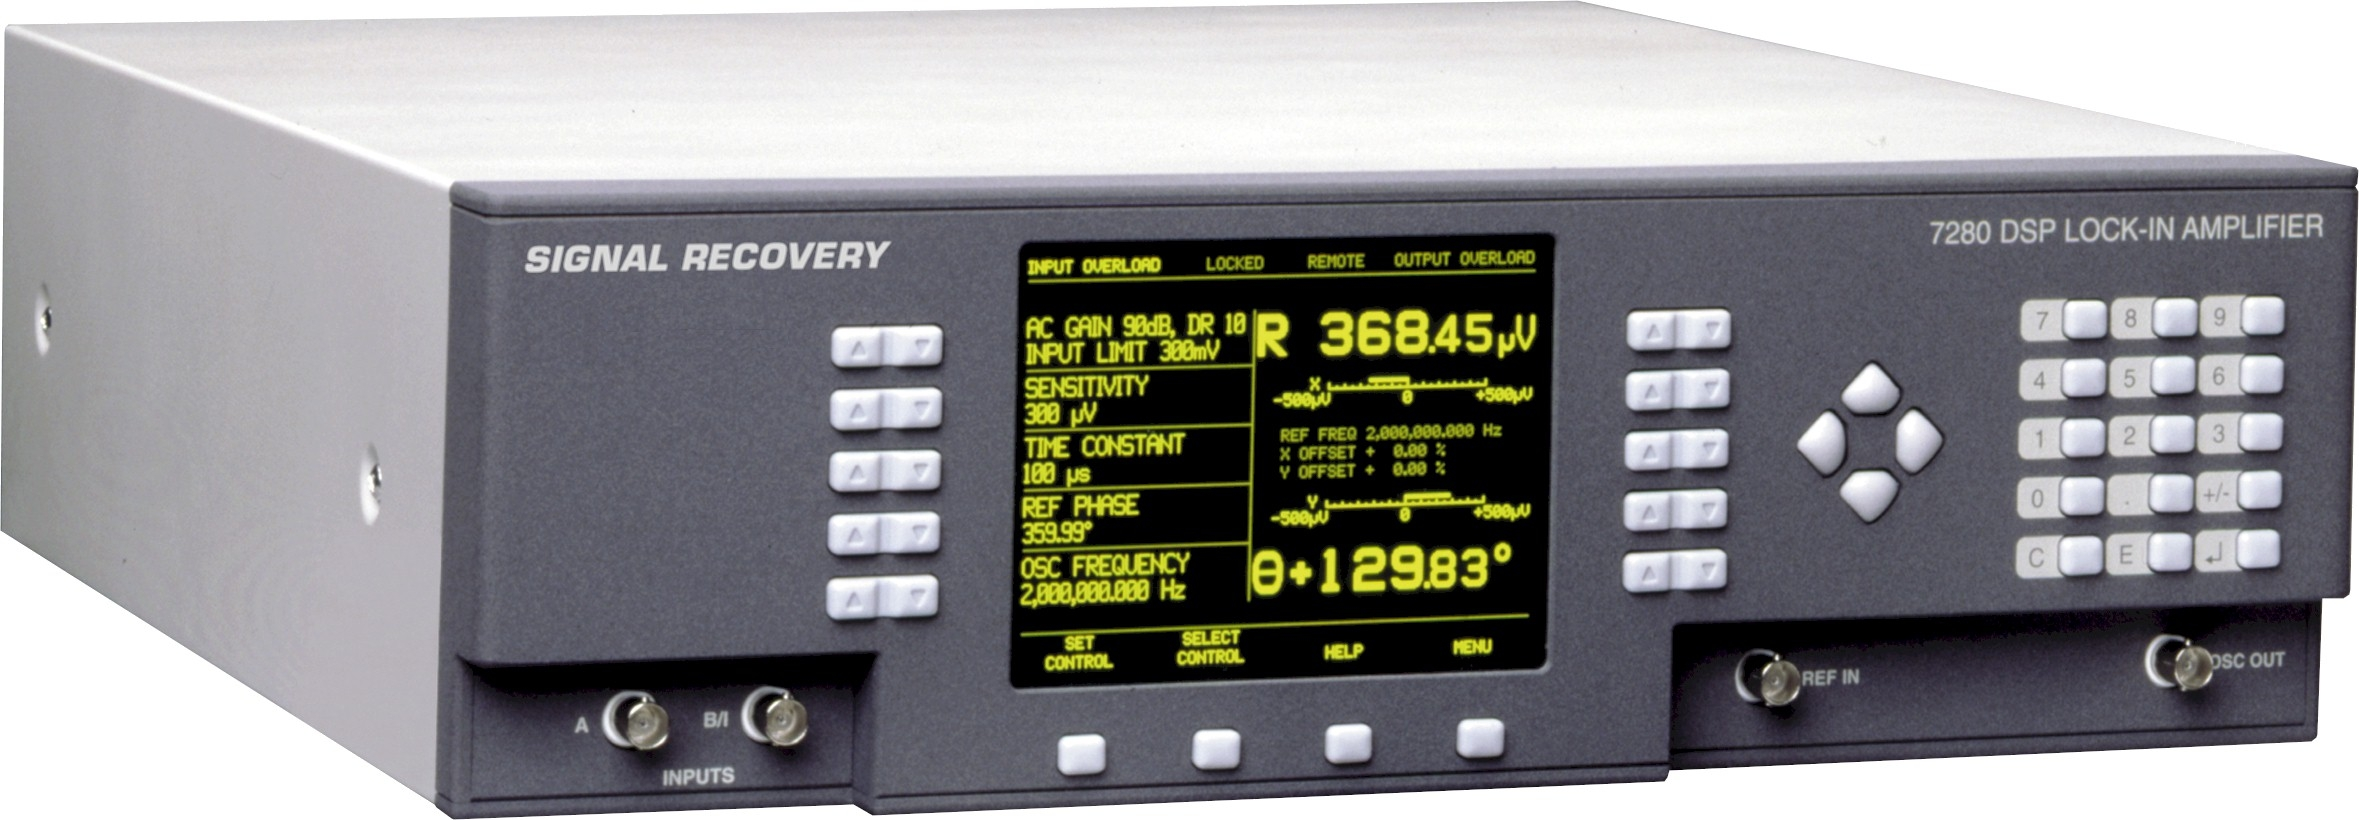 Signal Recovery Model 7280